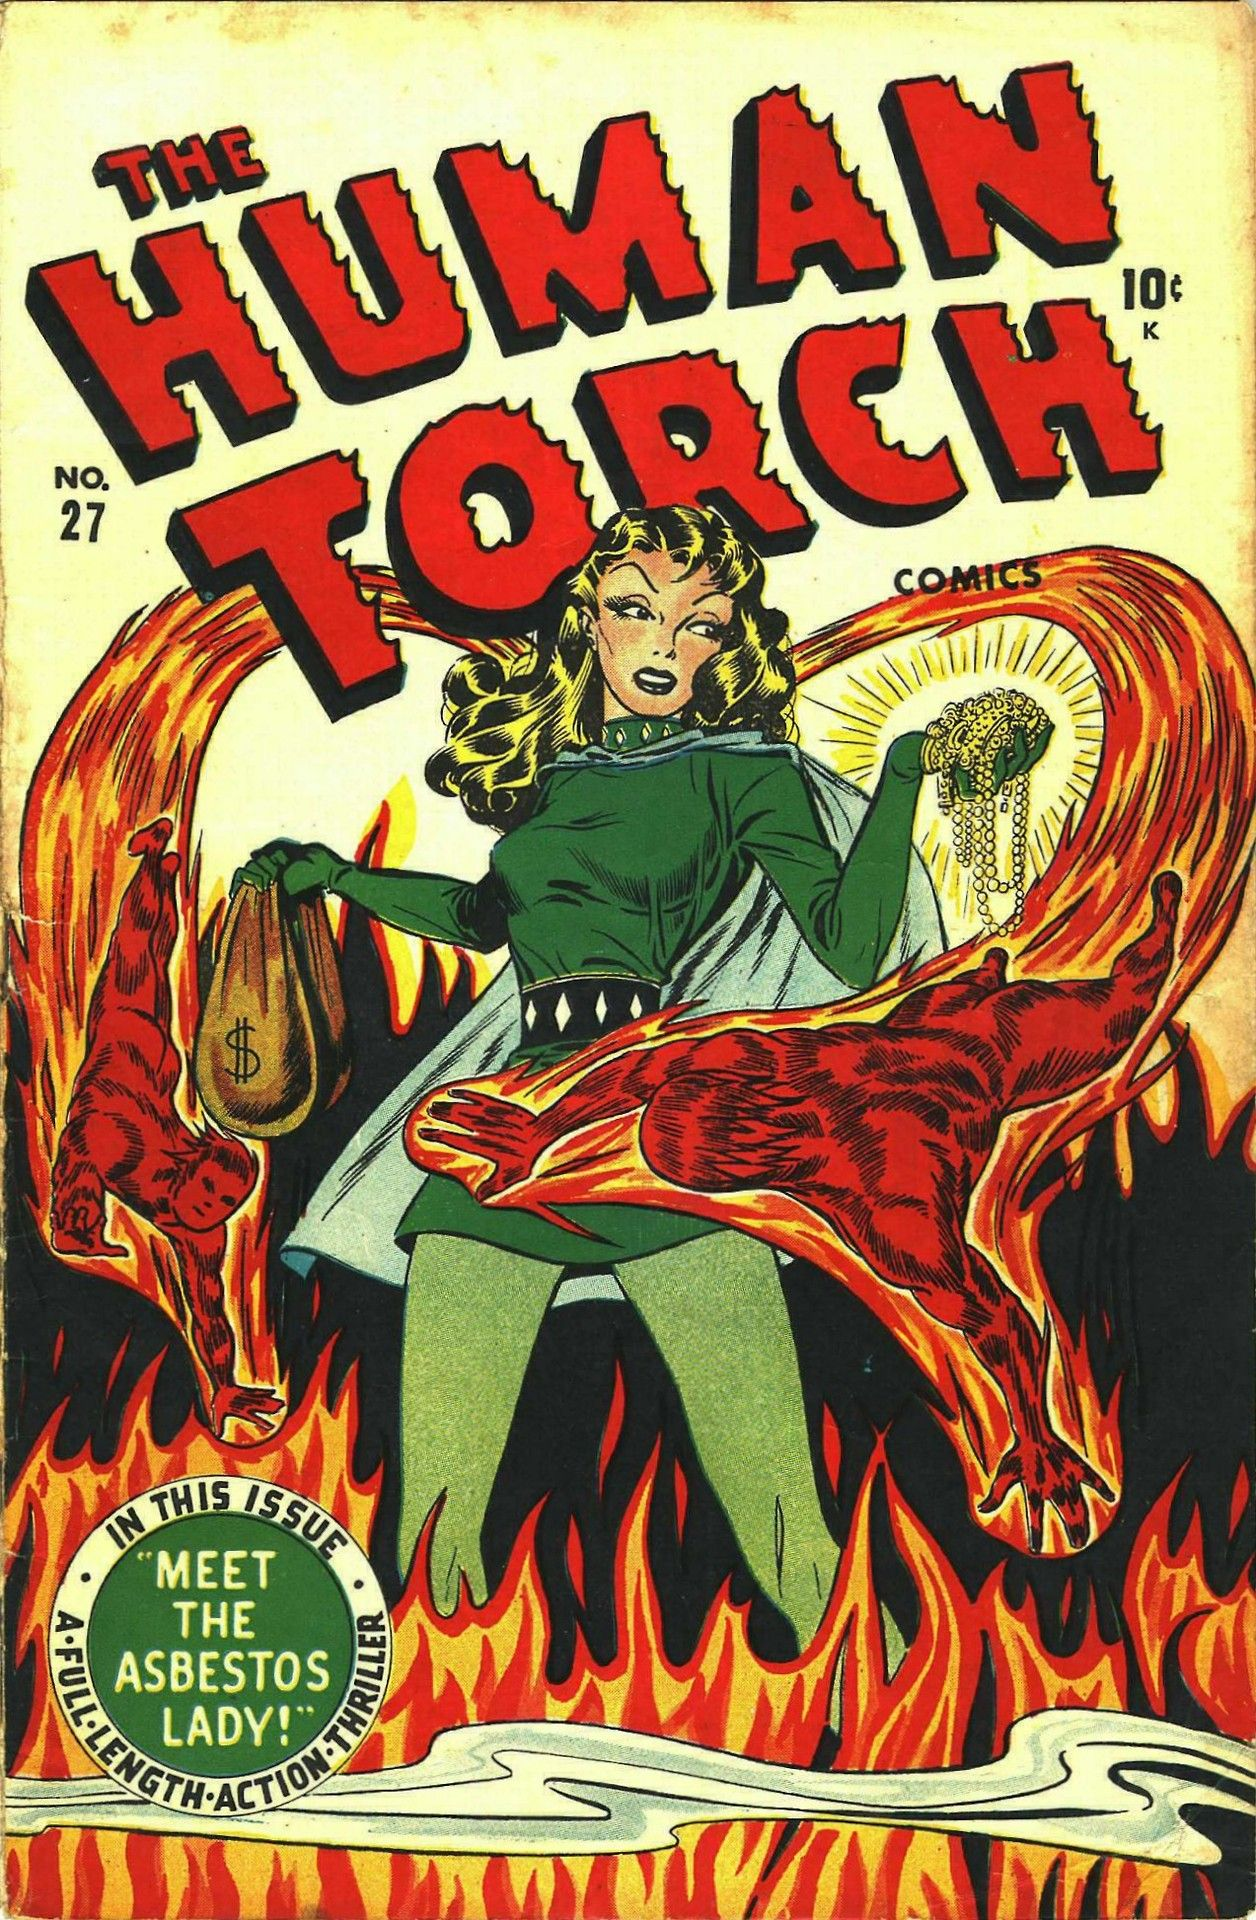 The Human Torch #27, Summer 1947 cover by Syd Shores | Super